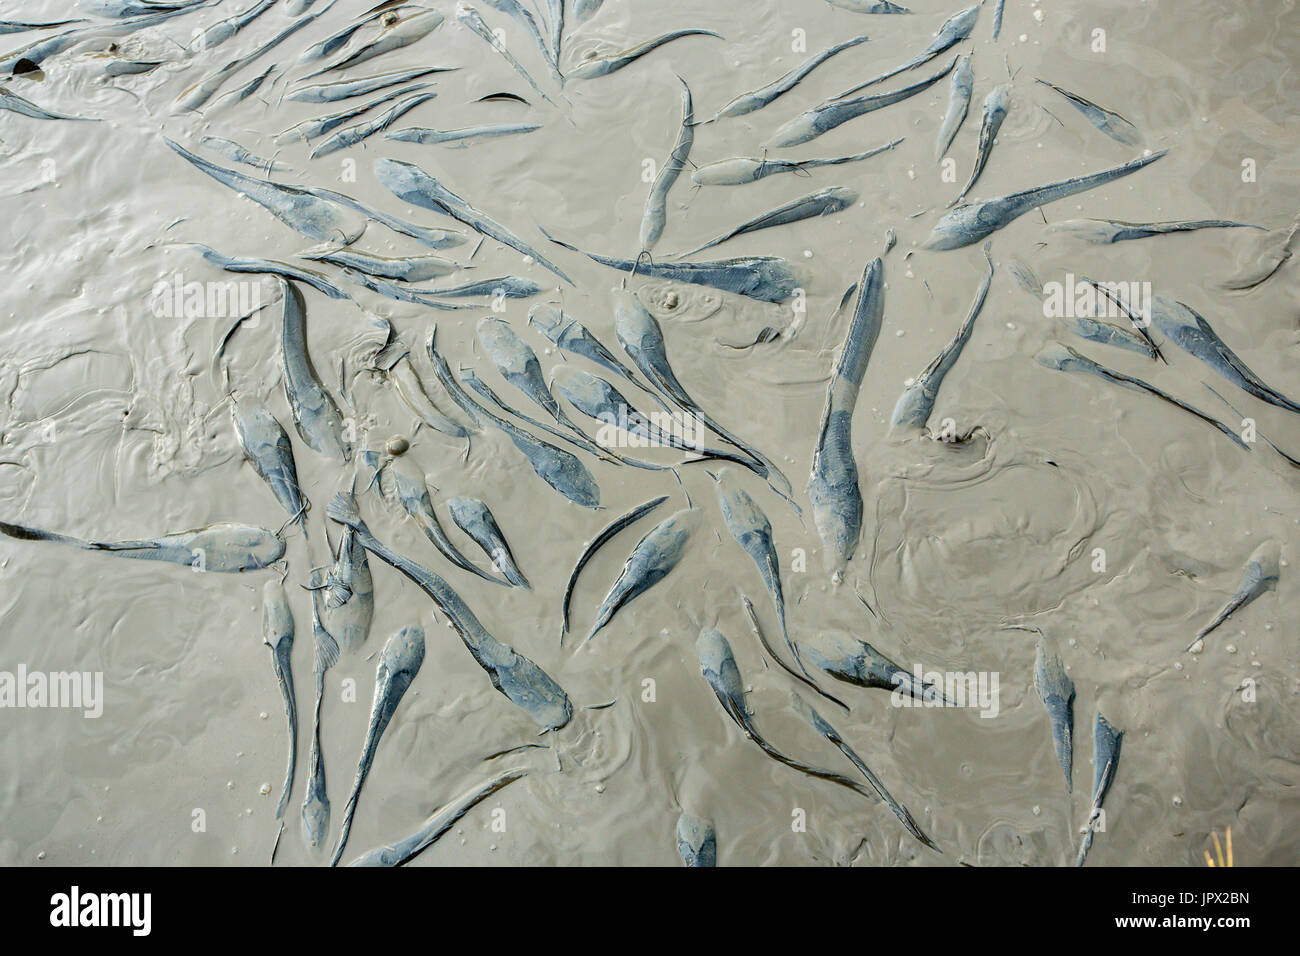 Catfishes in the mud at the end of the dry season - Kenya Stock Photo